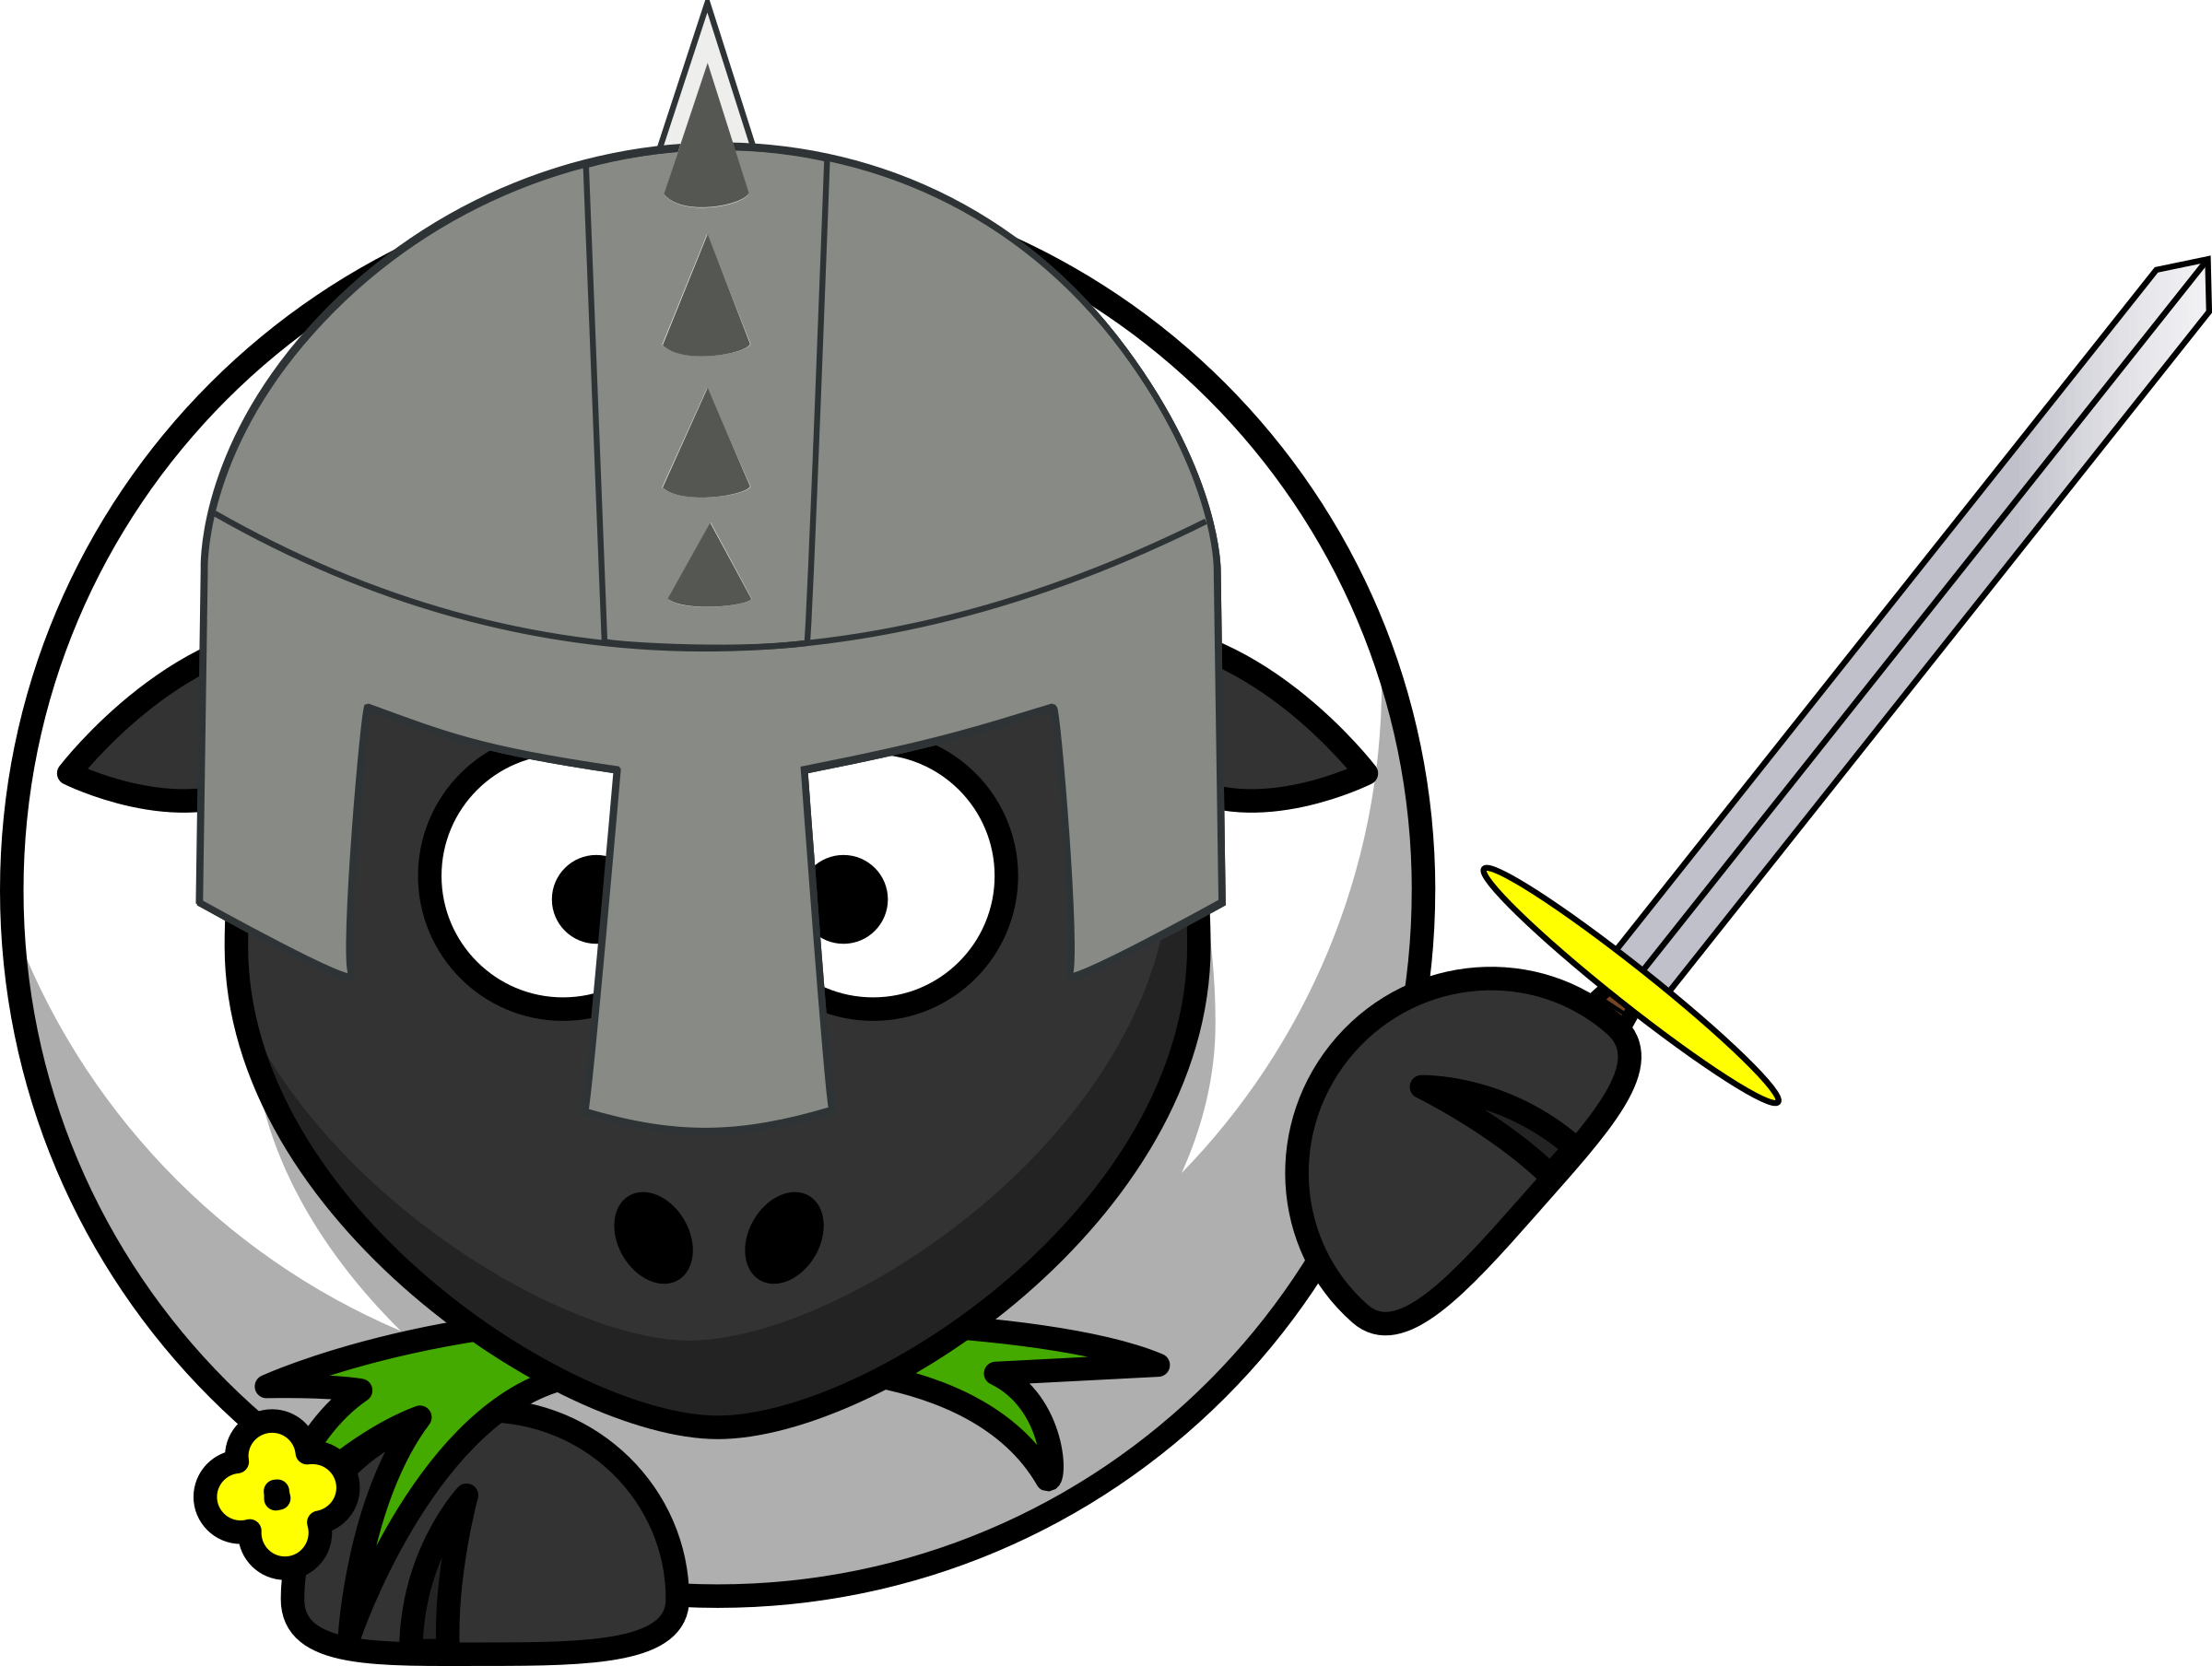 Clipart castle knight. Sheep big image png